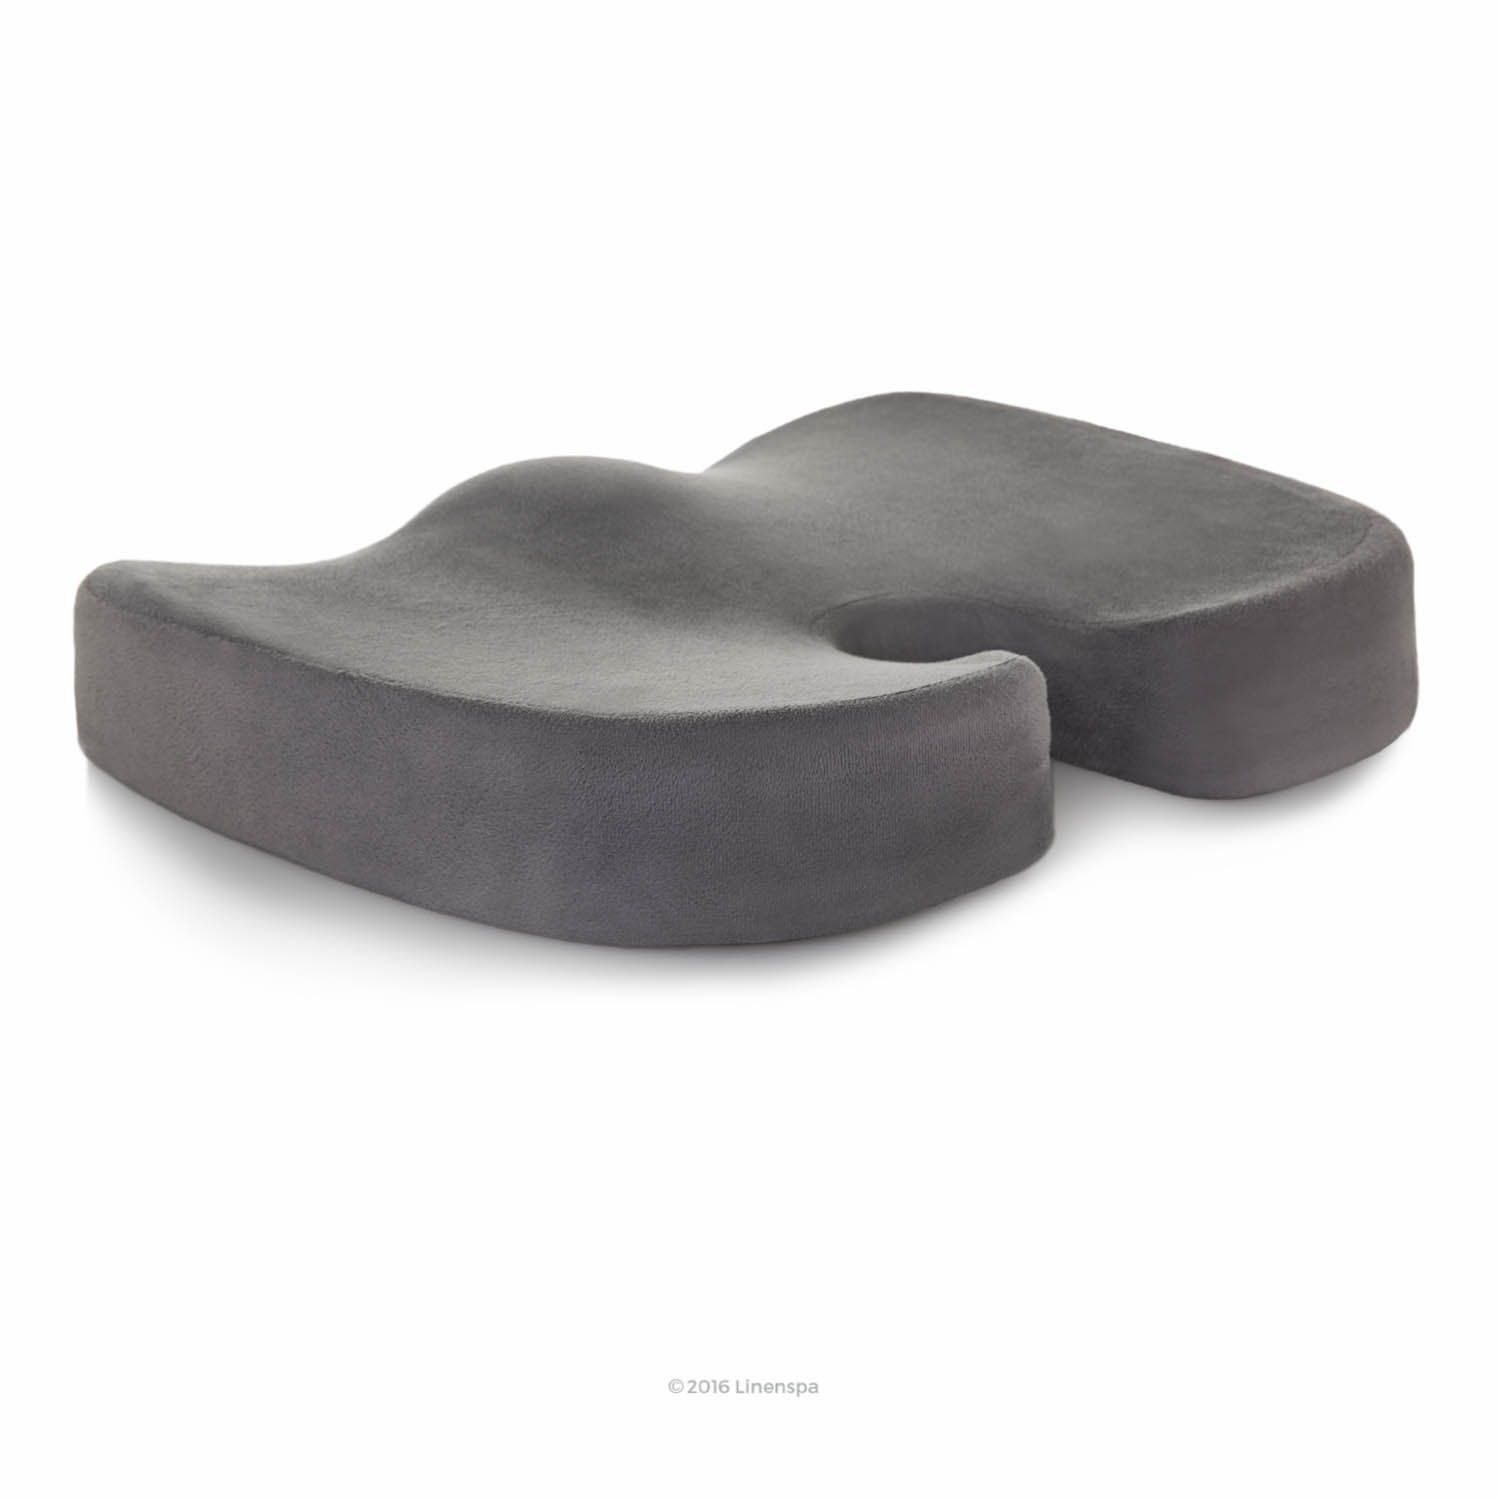 Orthopedic Gel Foam Seat Cushion for Tailbone/ Coccyx Comfort and Support